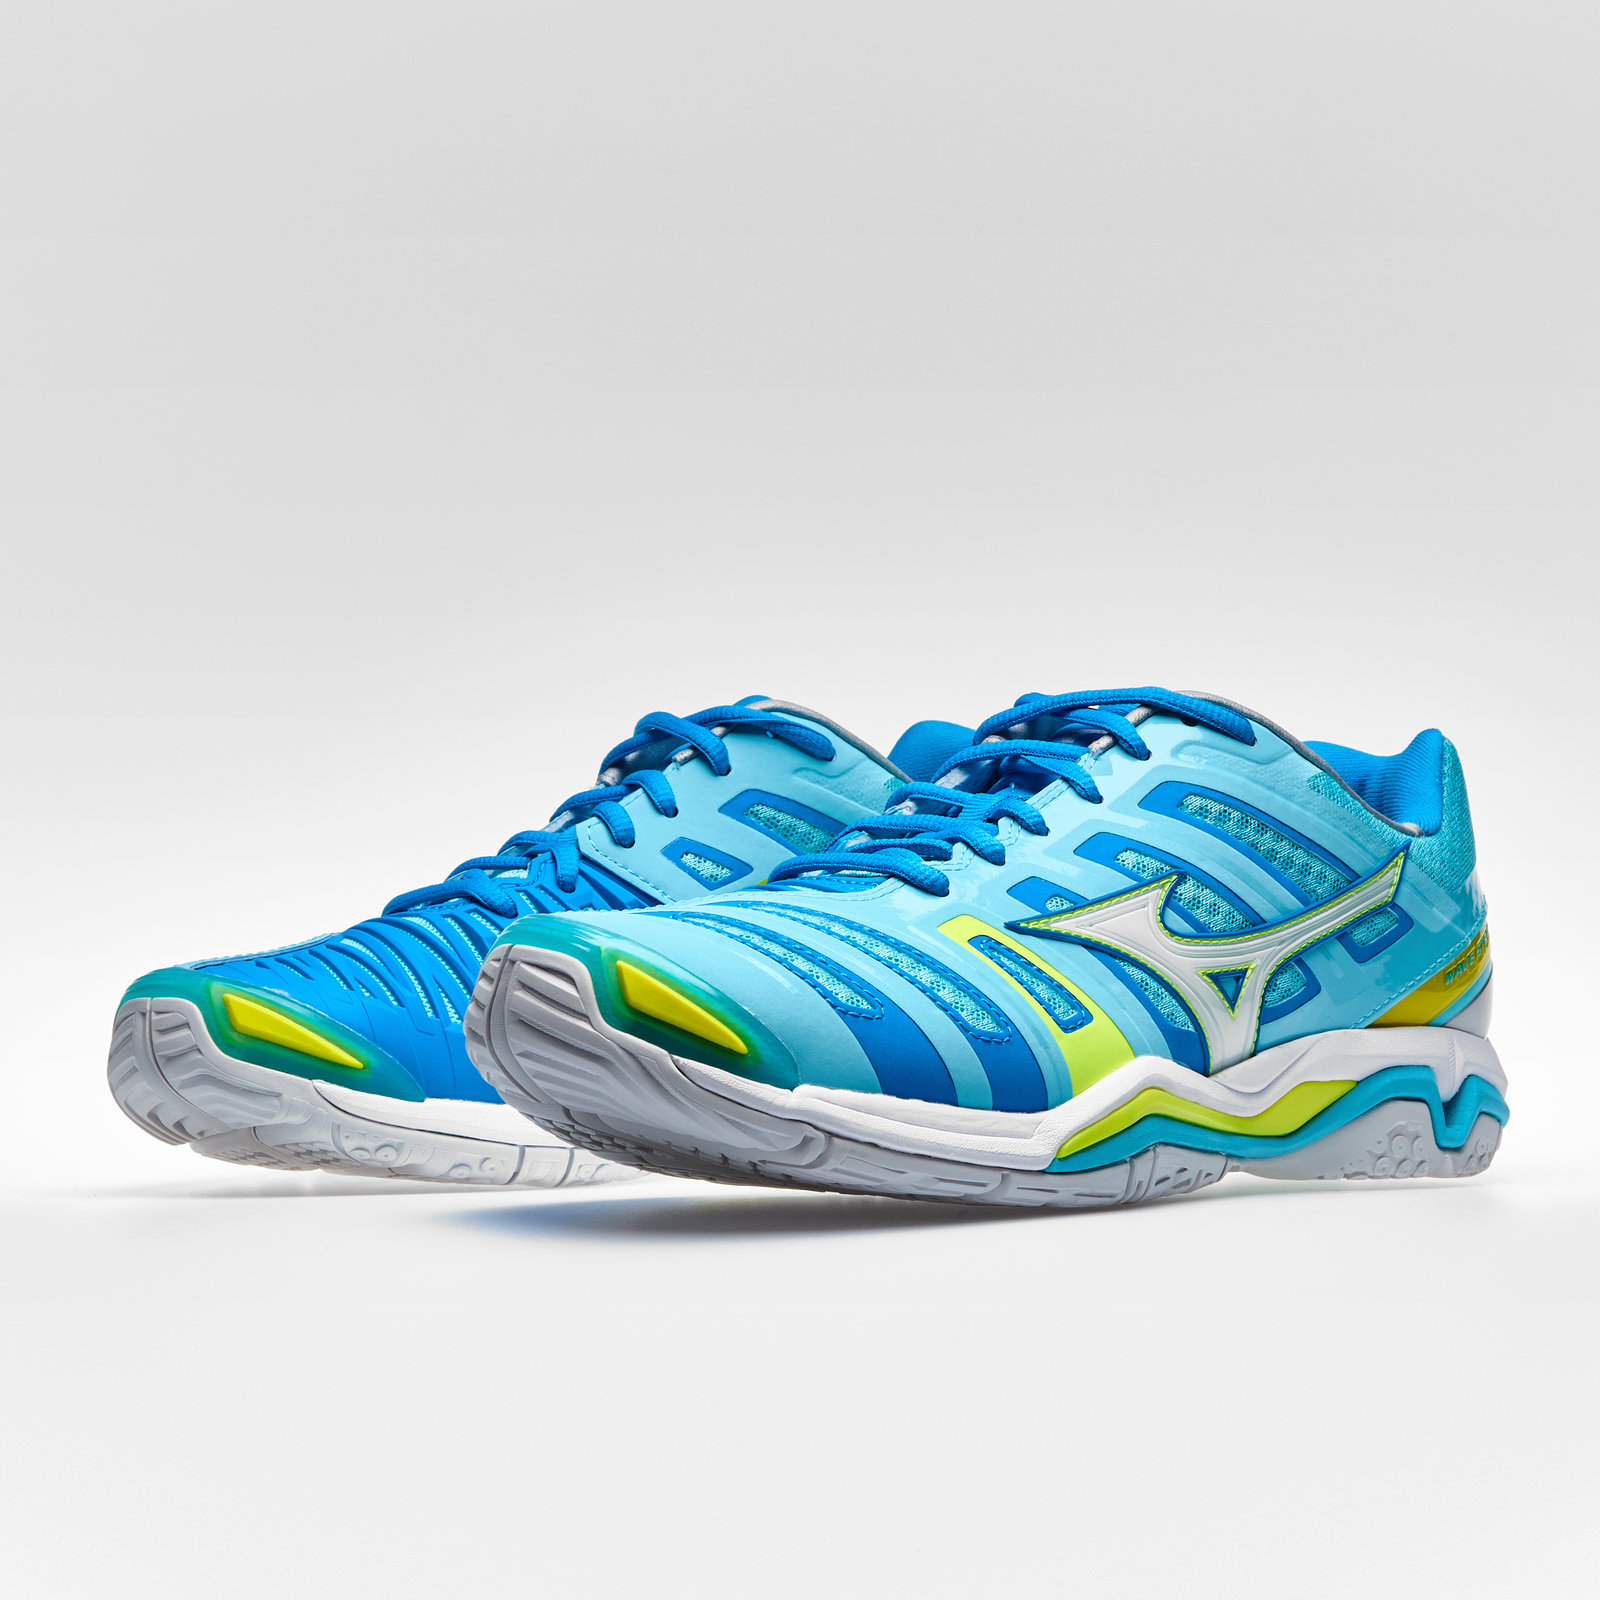 zapatillas mizuno balonmano opiniones usadas zara collection